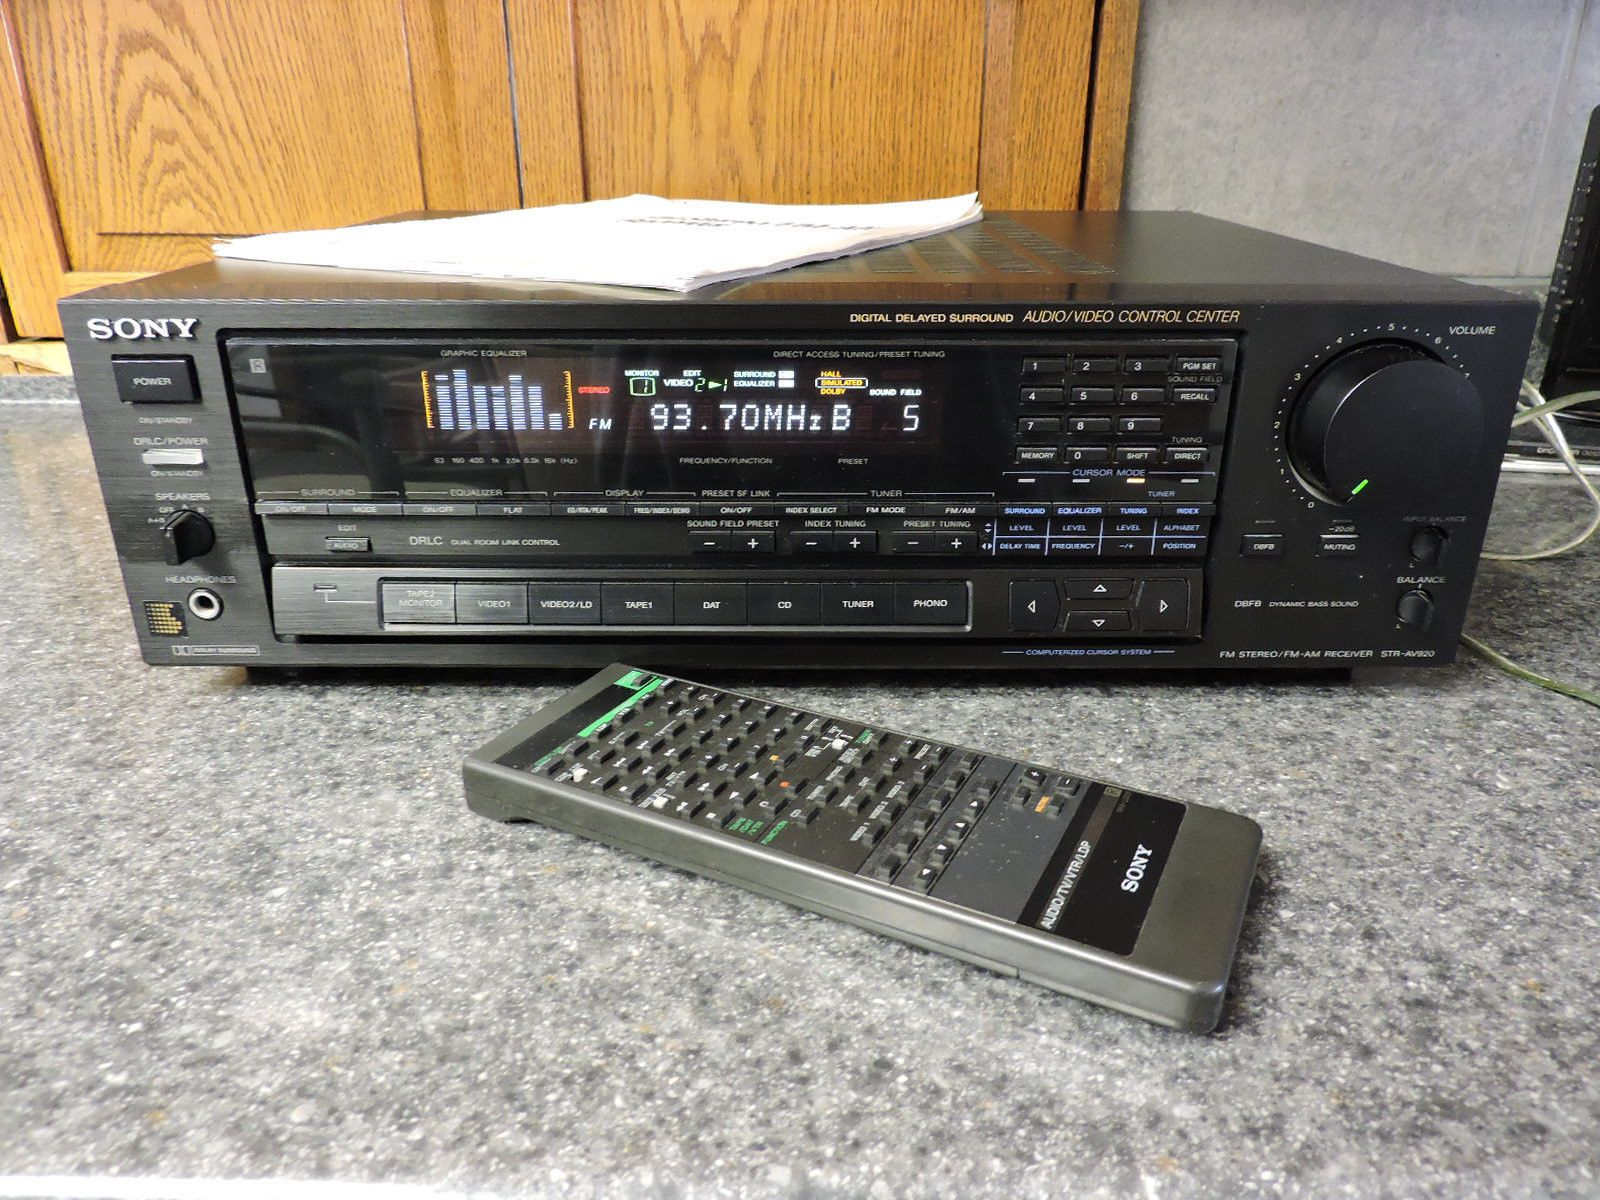 sony str av920 fm stereo fm am receiver w remote manual works rh pinterest com Sony Car Stereo sony str de197 stereo receiver manual